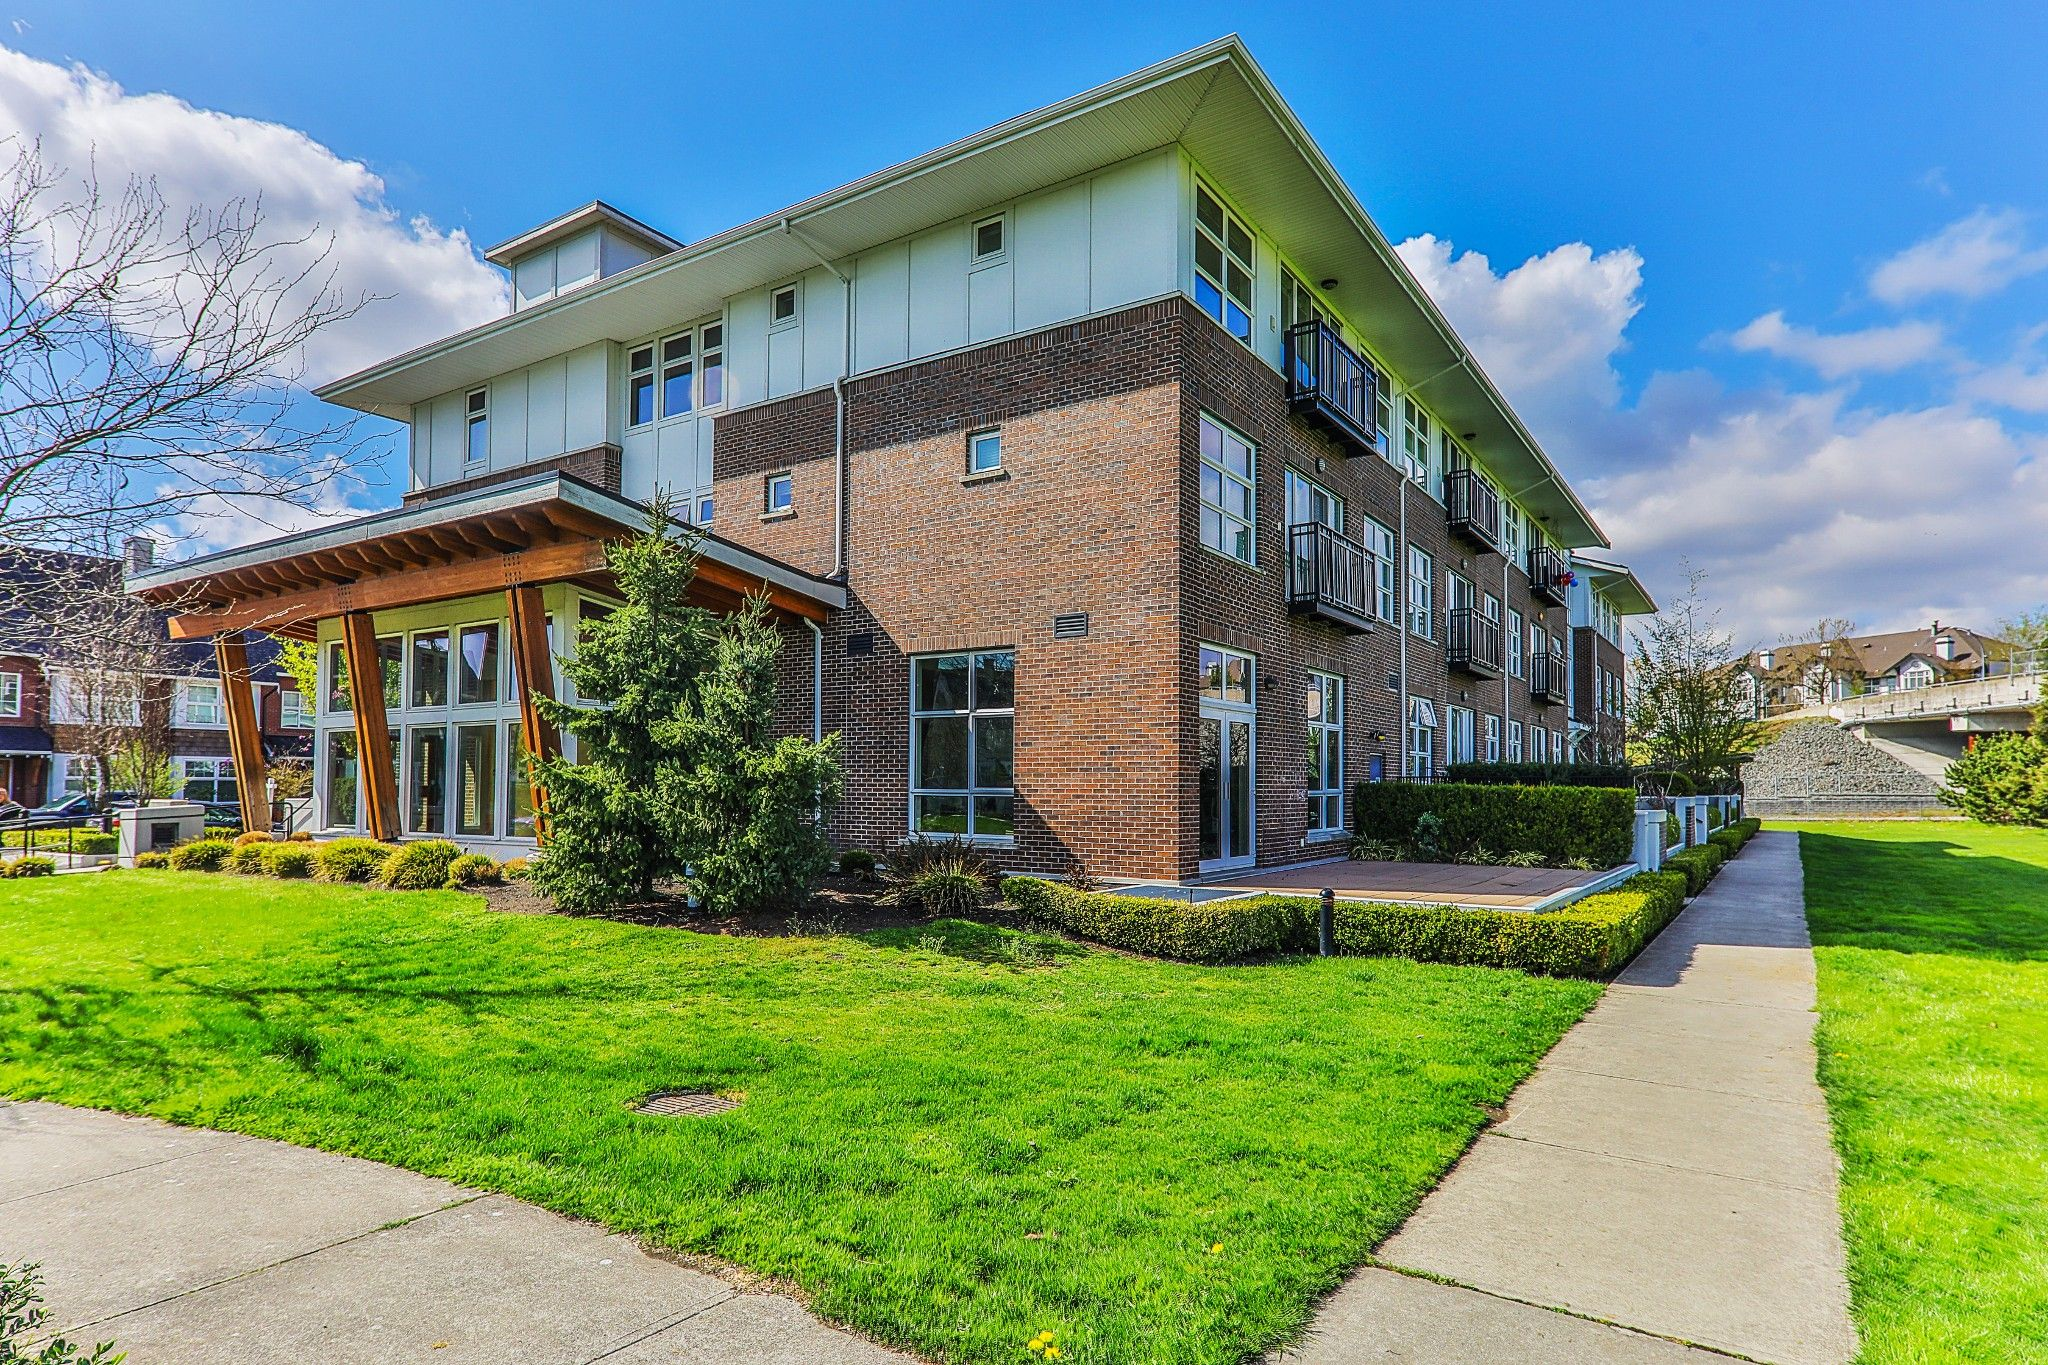 Main Photo: 310 245 Brookes Street in New Westminstwr: Queensborough Condo for sale (New Westminster)  : MLS®# R2388839